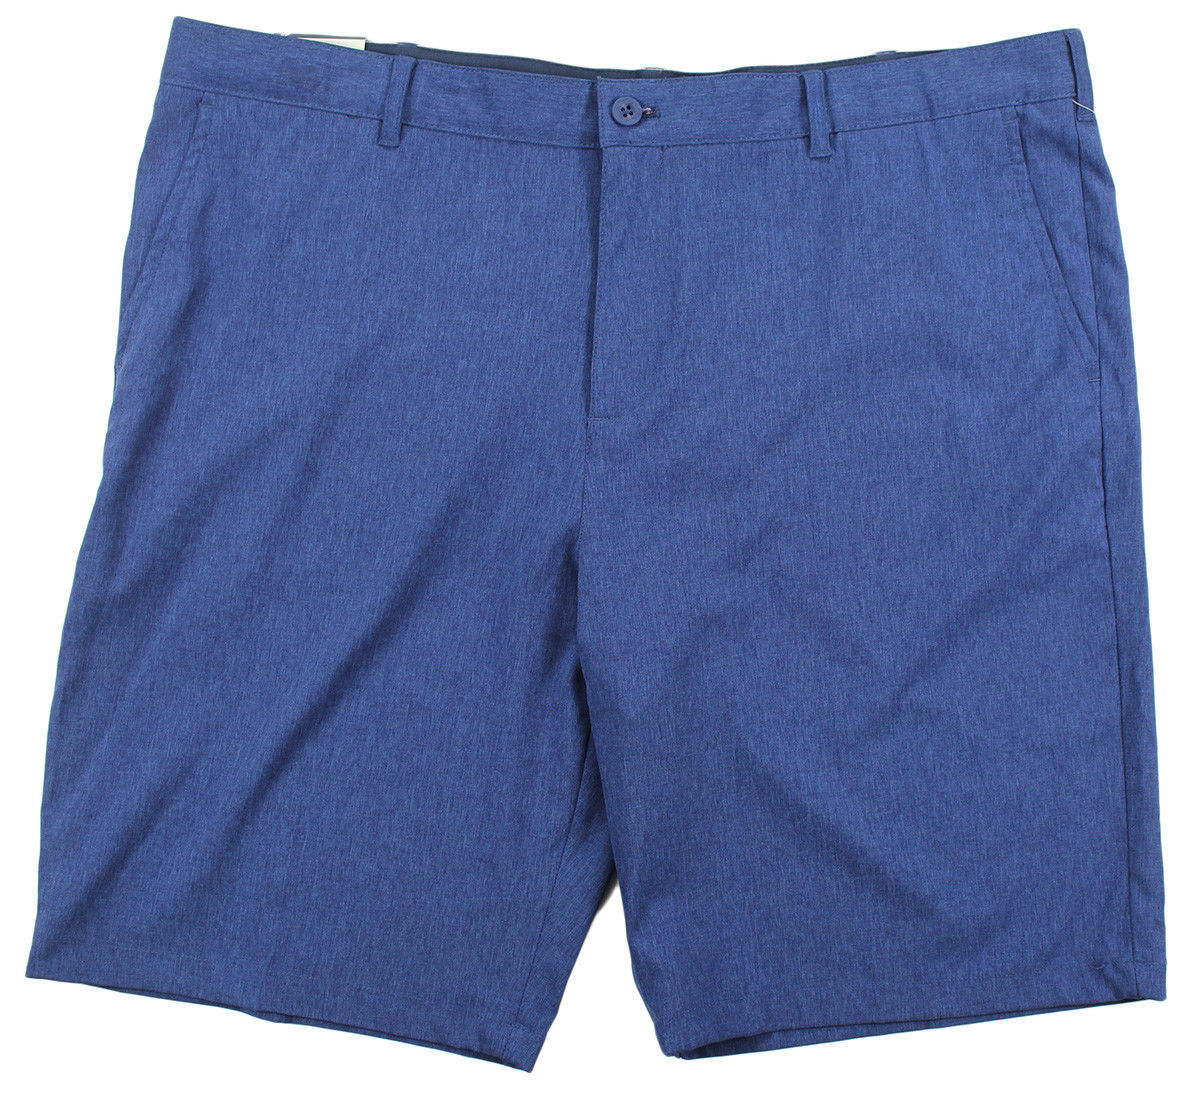 "Primary image for NEW MENS IZOD PERFORMX STRETCH WICKING UPF-40 BLUE 10.5"" SPORTFLEX SHORTS 42"